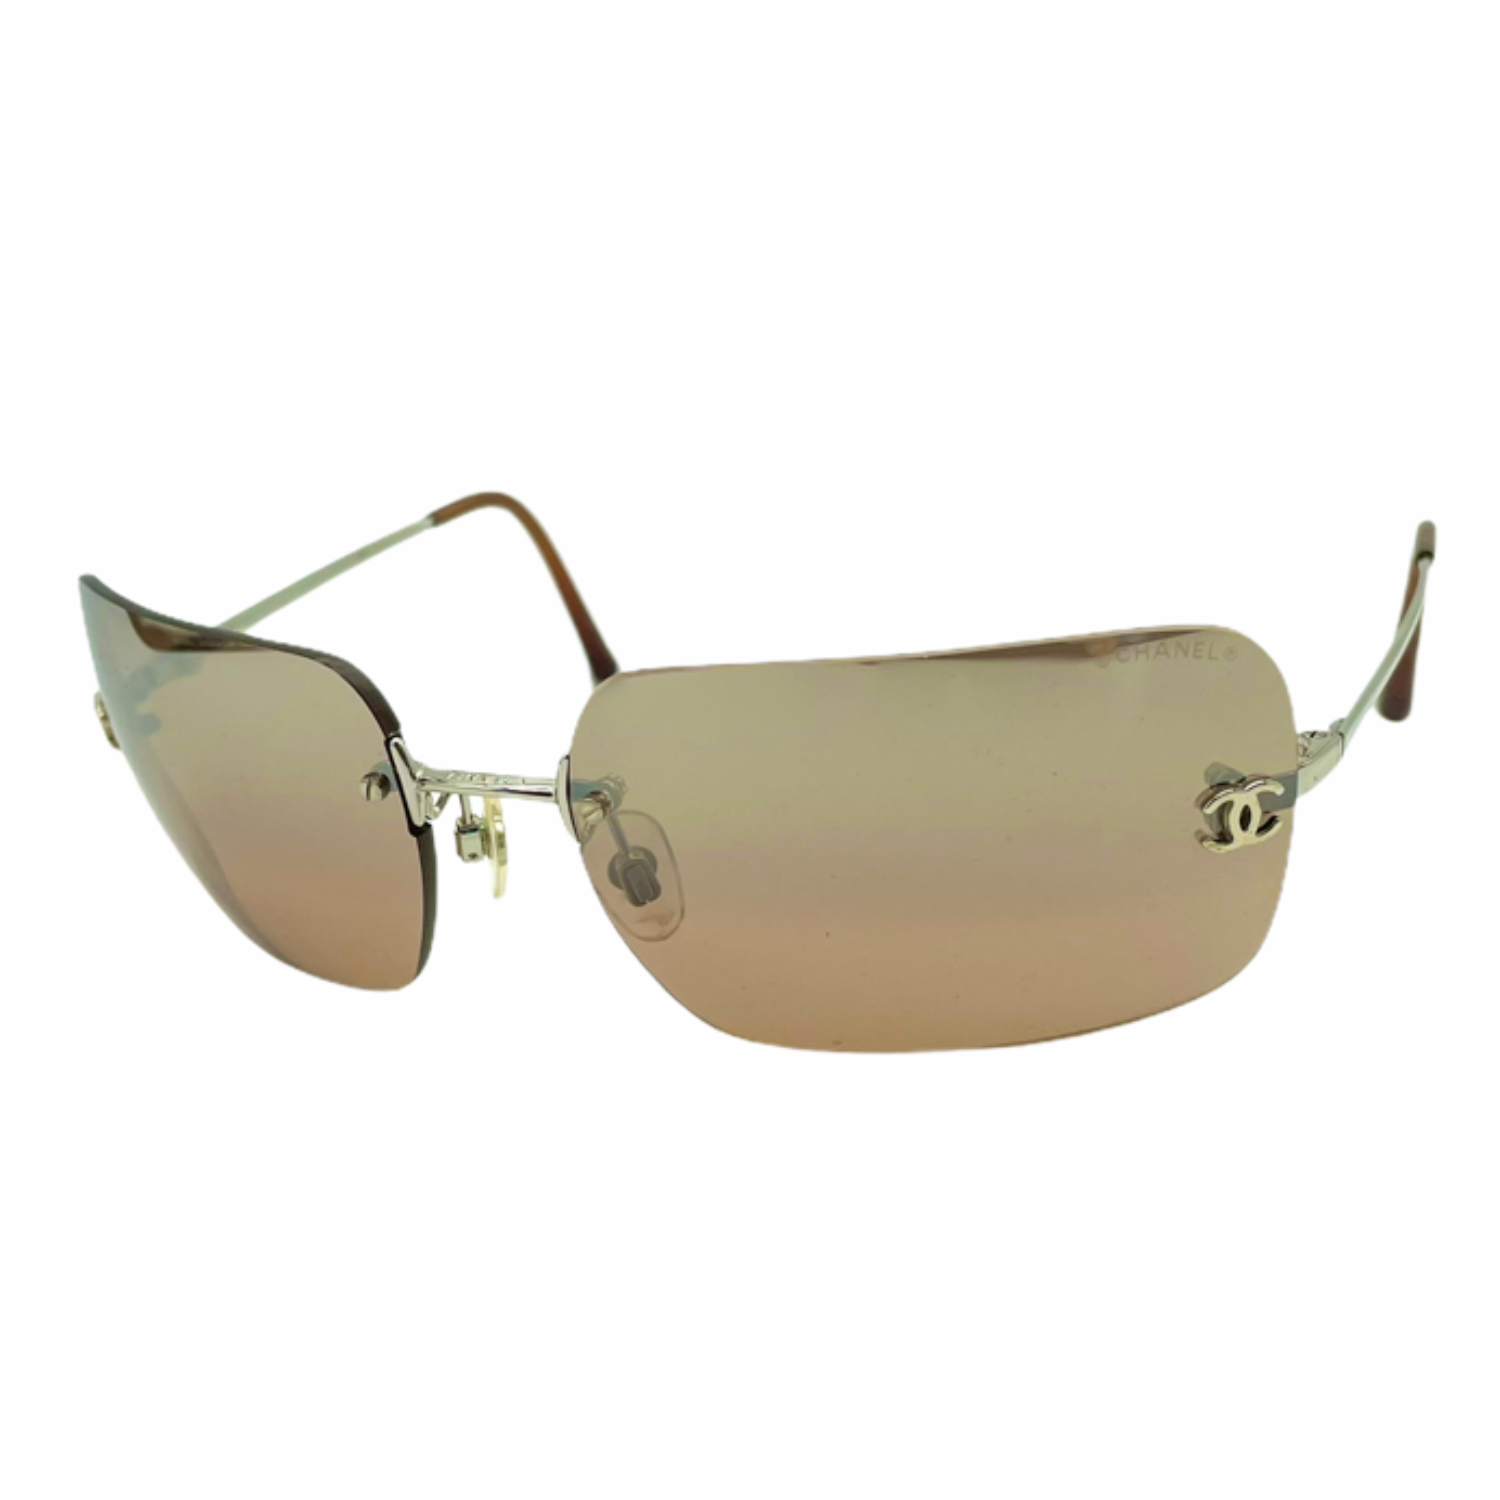 Vintage Chanel Rimless Mirrored Sunglasses in Brown | NITRYL